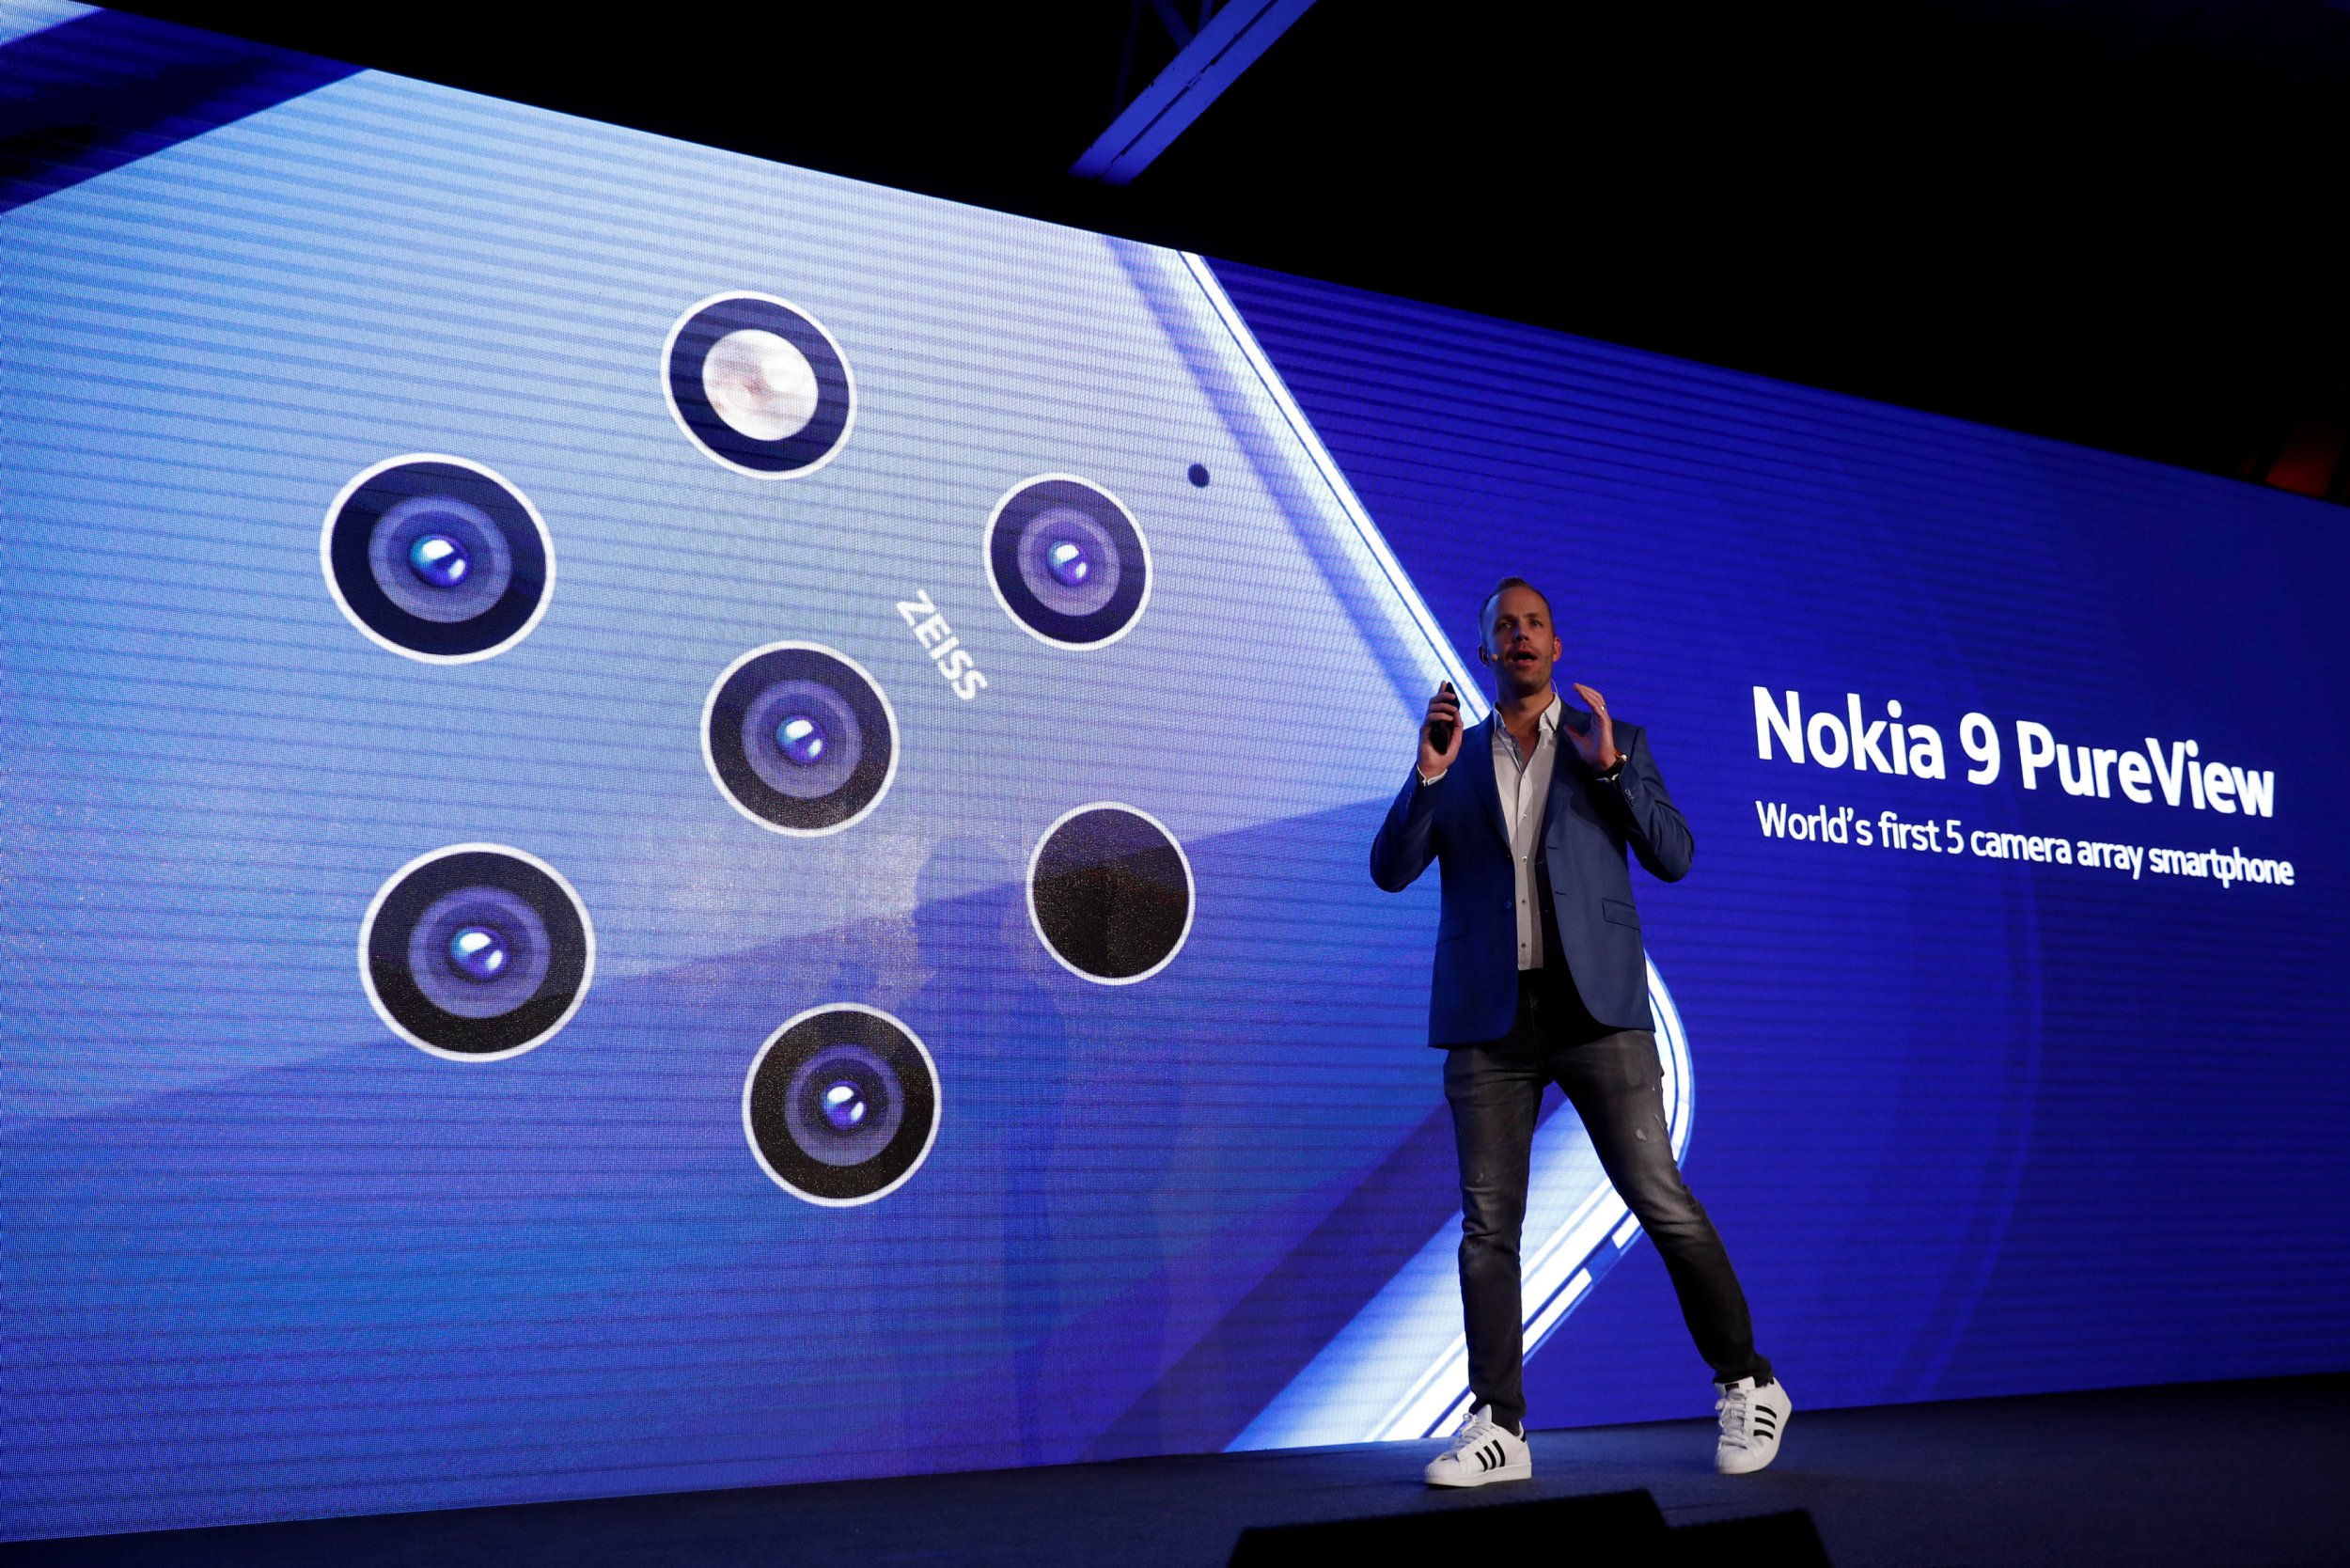 HMD Global Product Officer Juho Sarvikas, presents the new Nokia 9 PureView during the Mobile World Congress in Barcelona, Spain February 24, 2019. REUTERS/Rafael Marchante